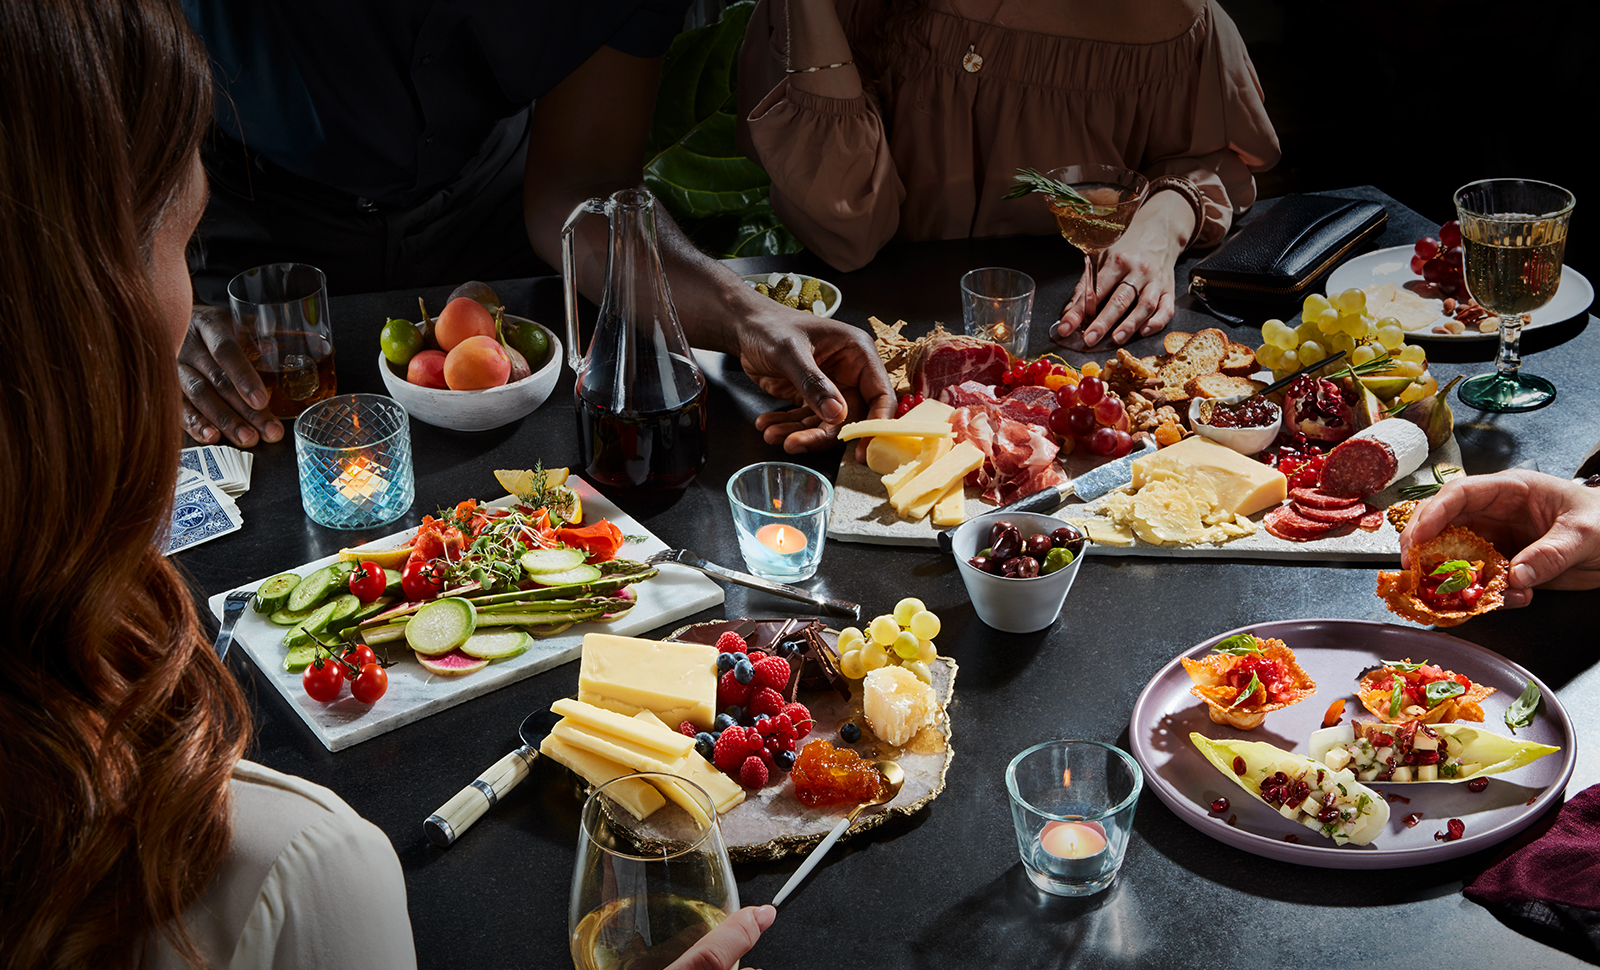 Four people around a table dressed in several platters of assorted cheeses, meats, fruits, vegetables, crackers, nuts, and cocktails.